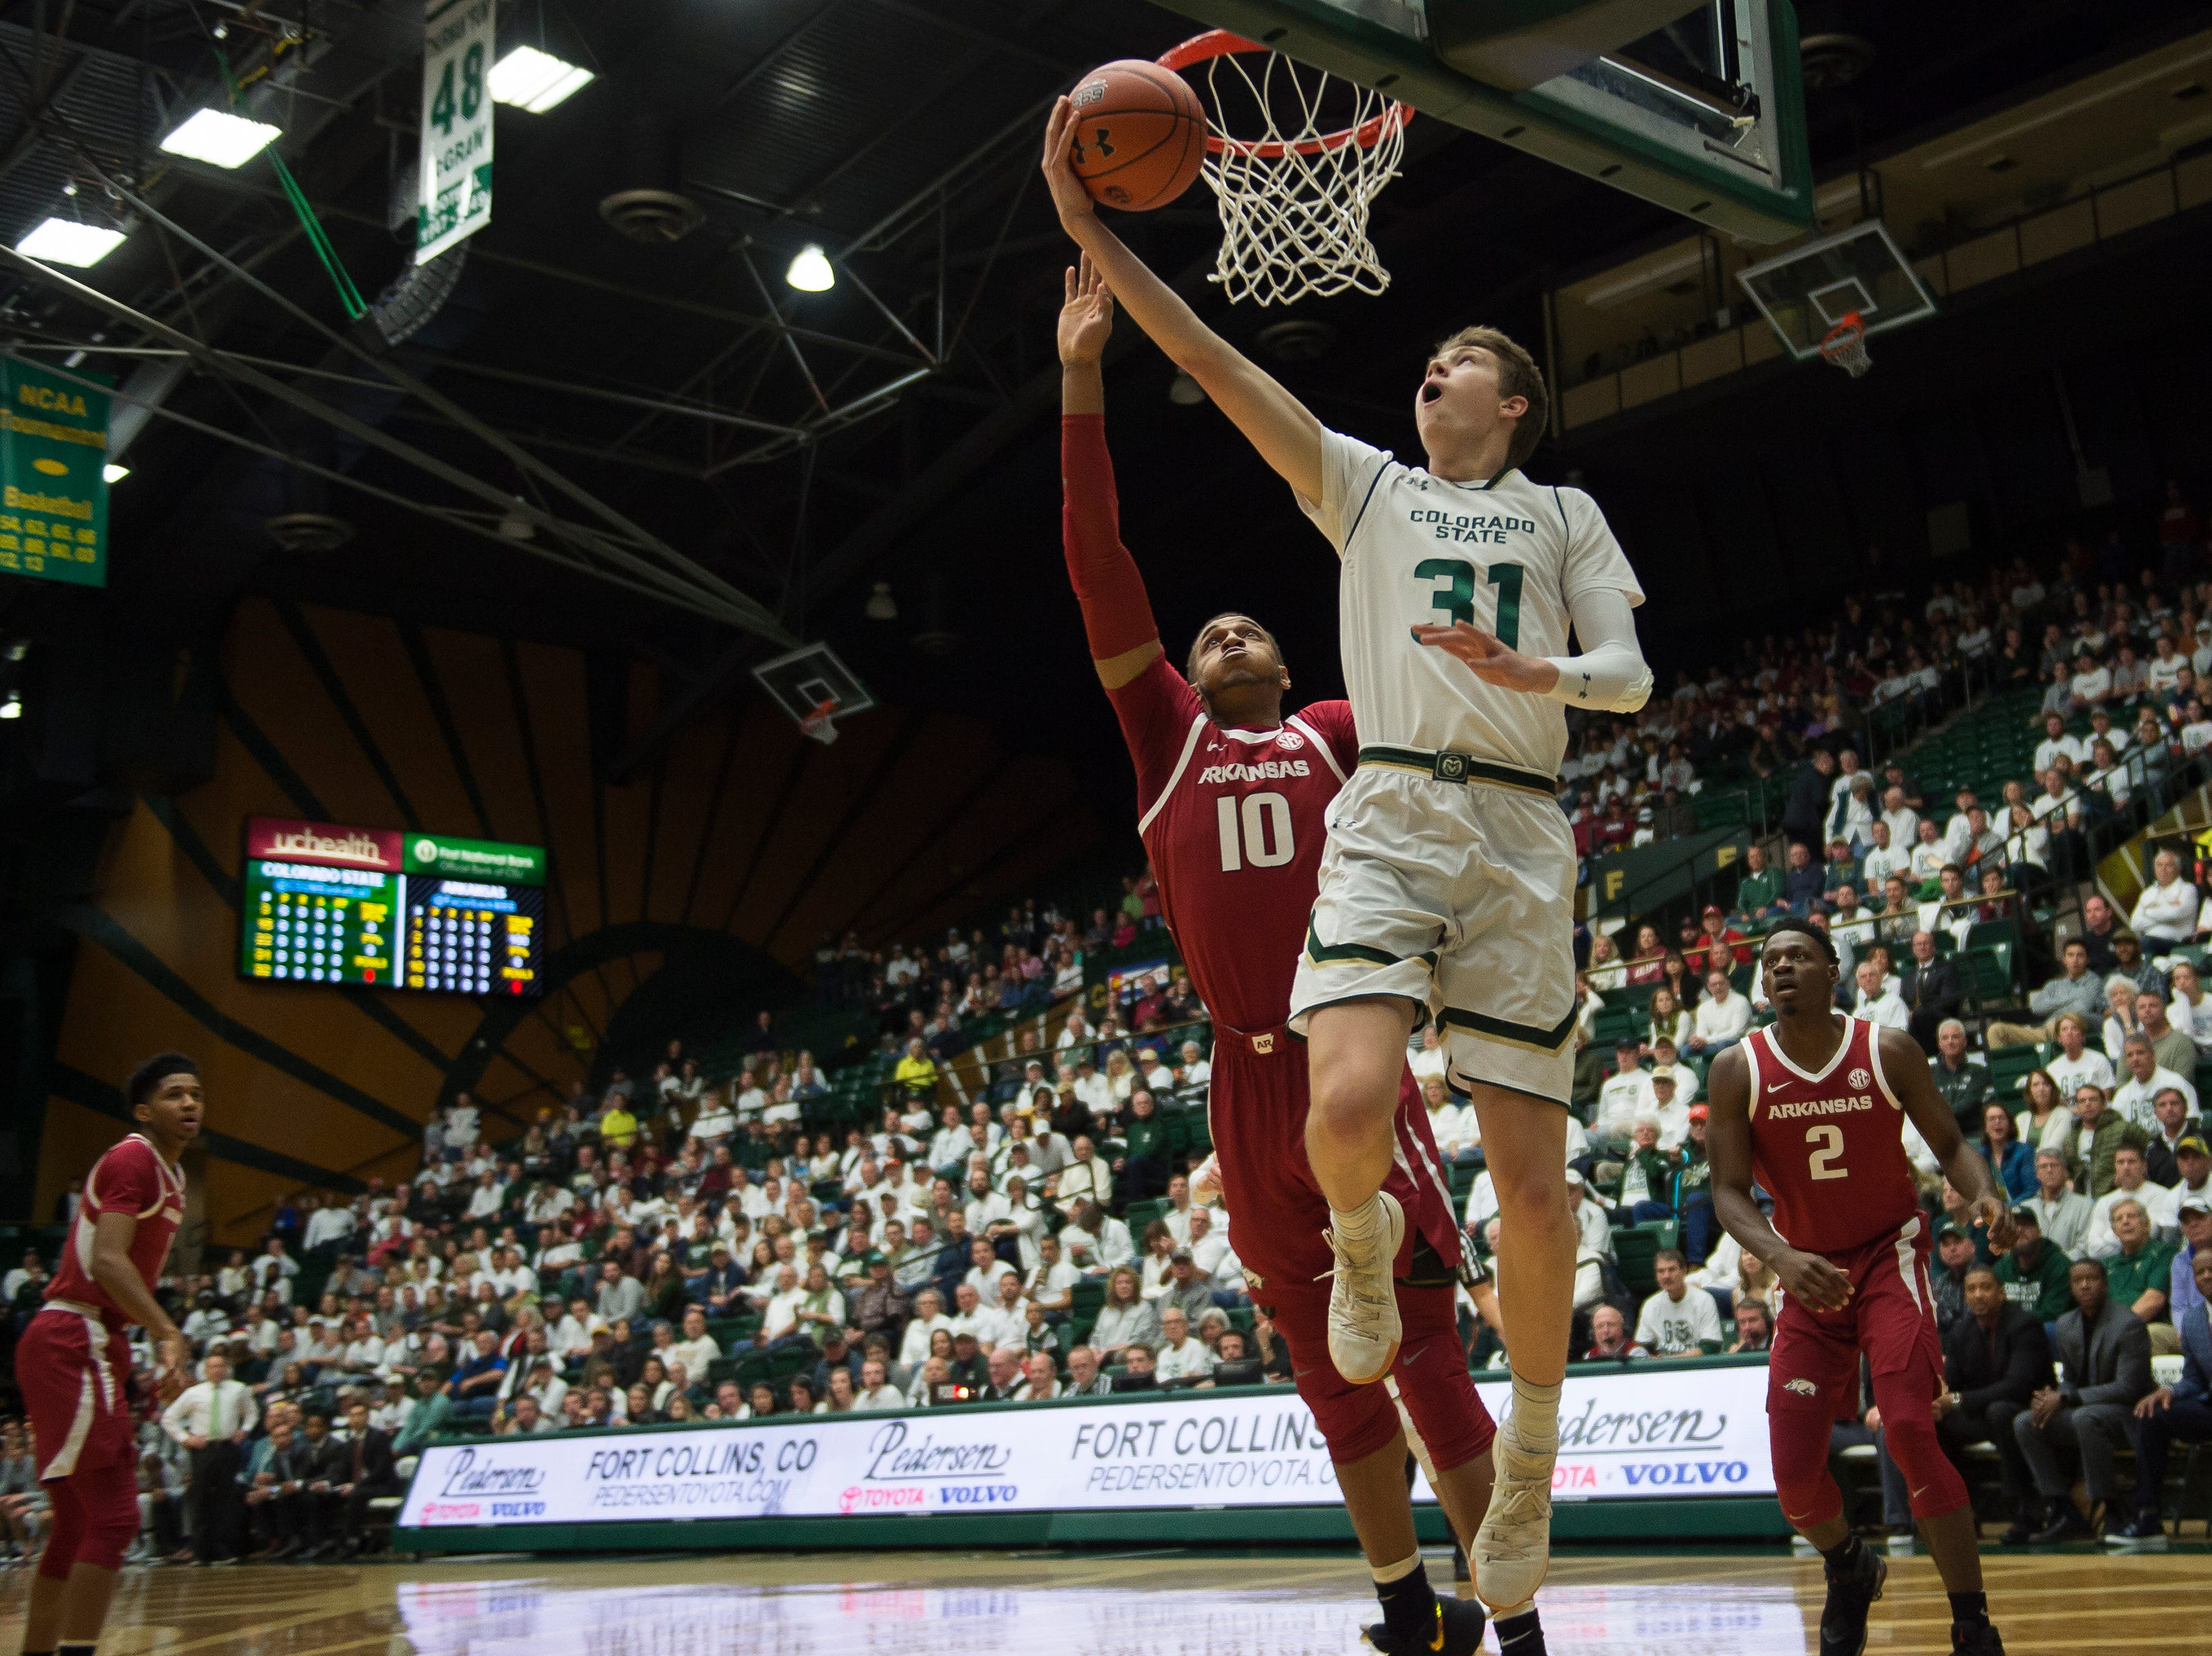 Colorado State University freshman forward Adam Thistlewood (31) gets a layup past Arkansas sophomore forward Daniel Gafford (10) on Wednesday, Dec. 5, 2018, Moby Arena in Fort Collins, Colo.